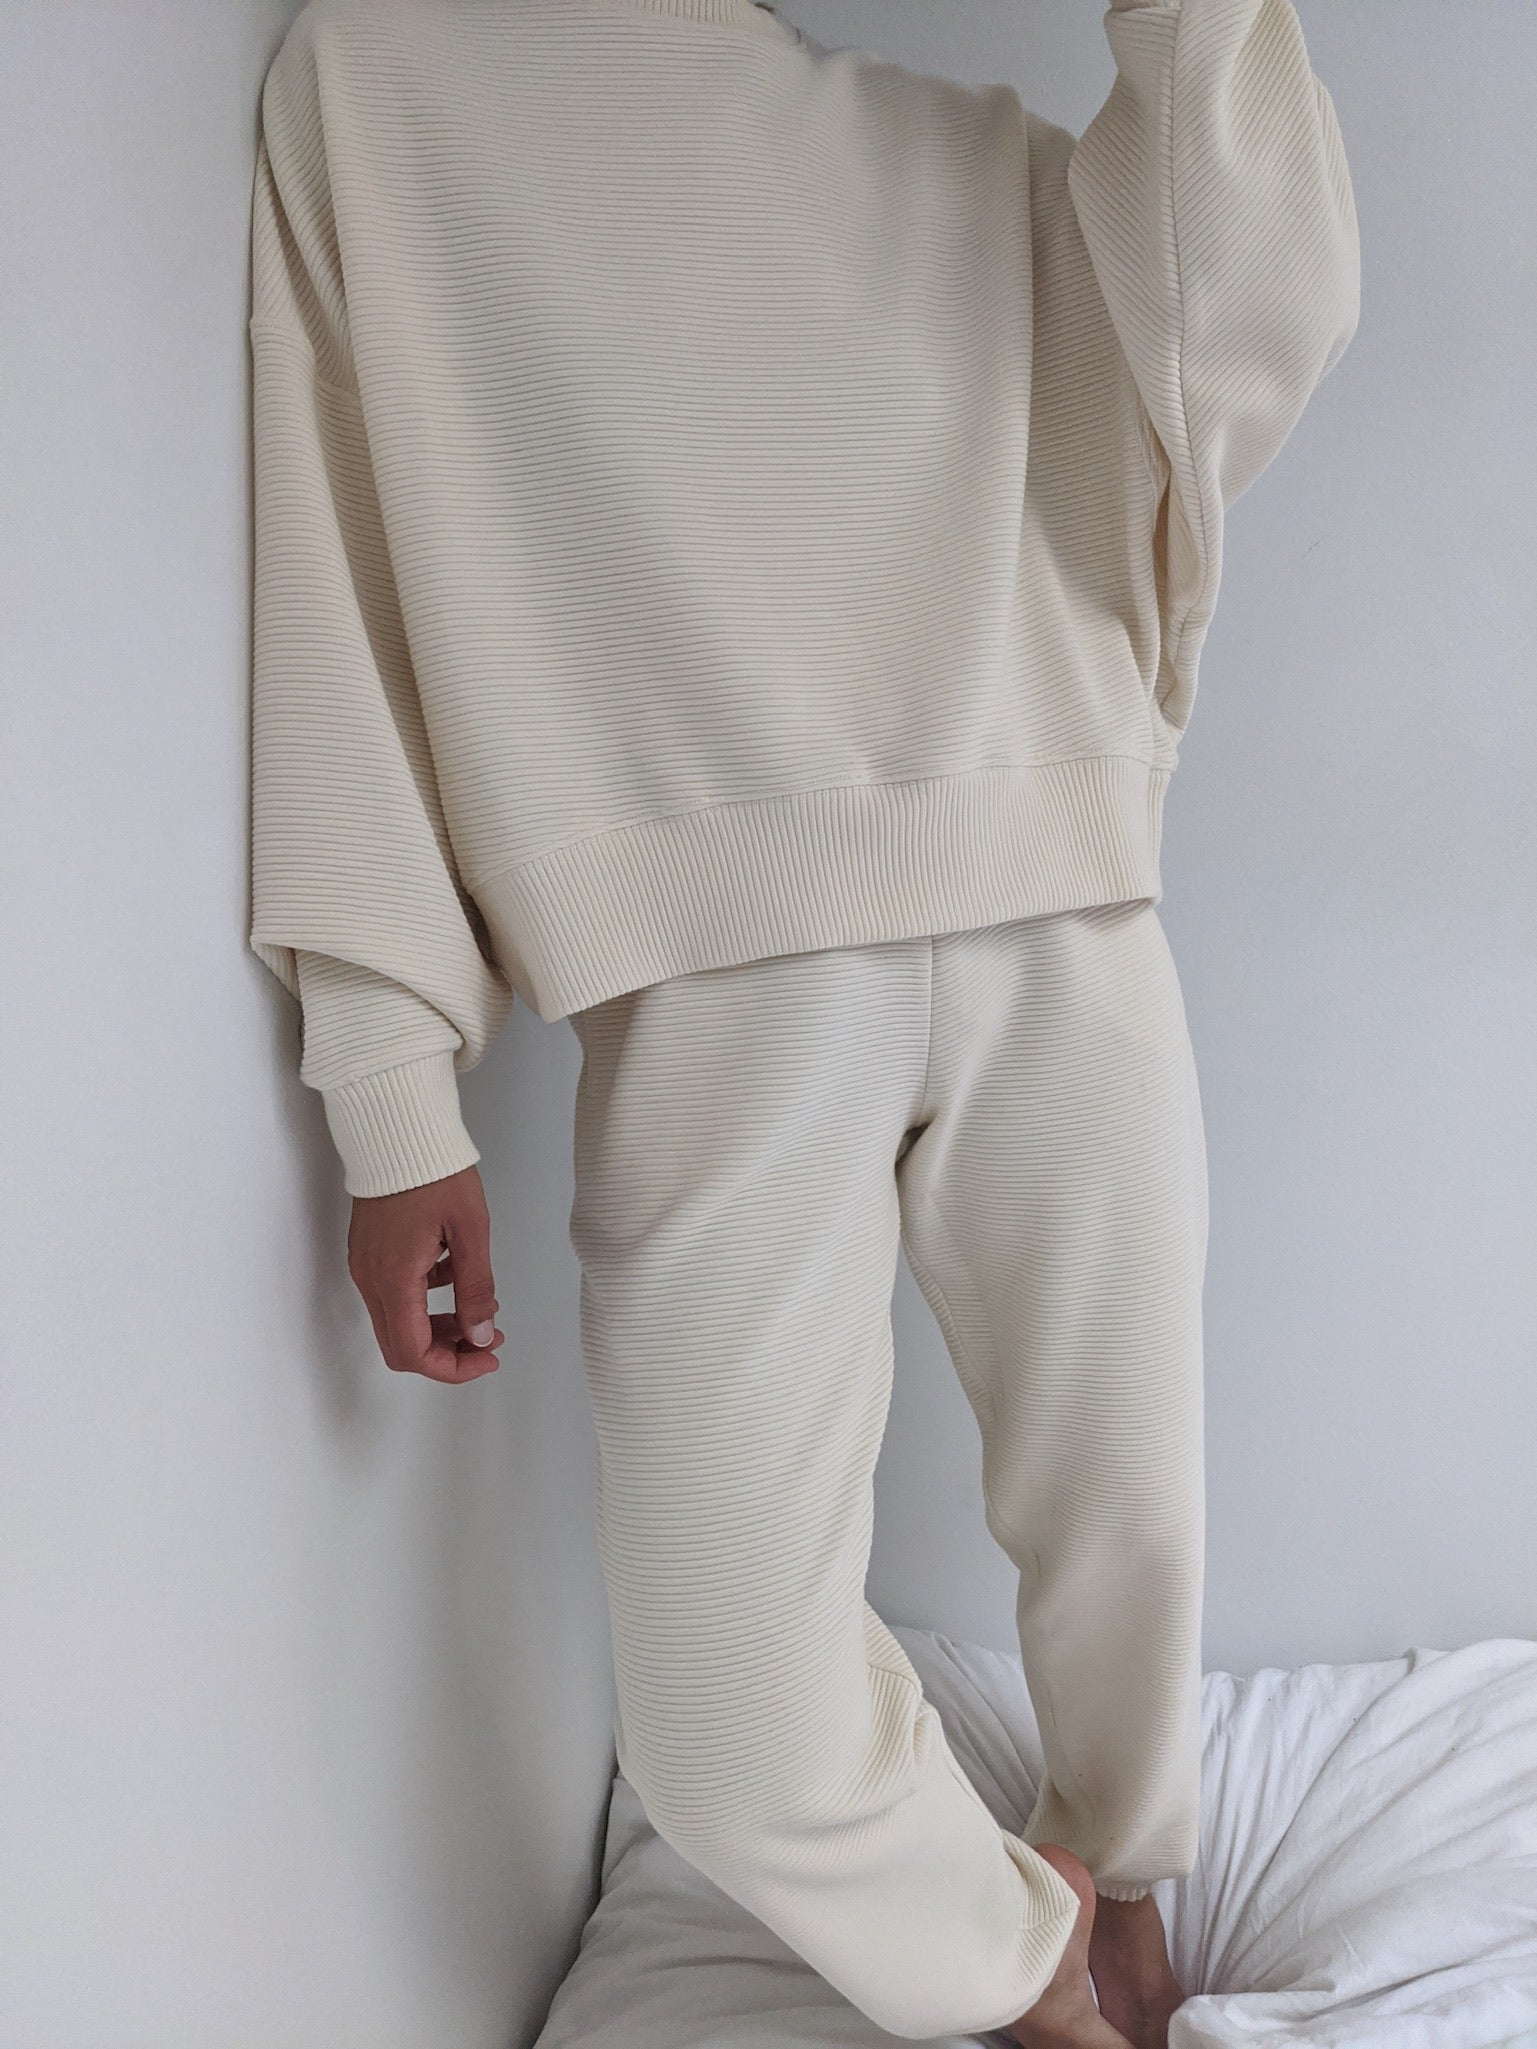 Na Nin Franklin Rippled Cotton Sweatpants / Available in Cream & Faded Black